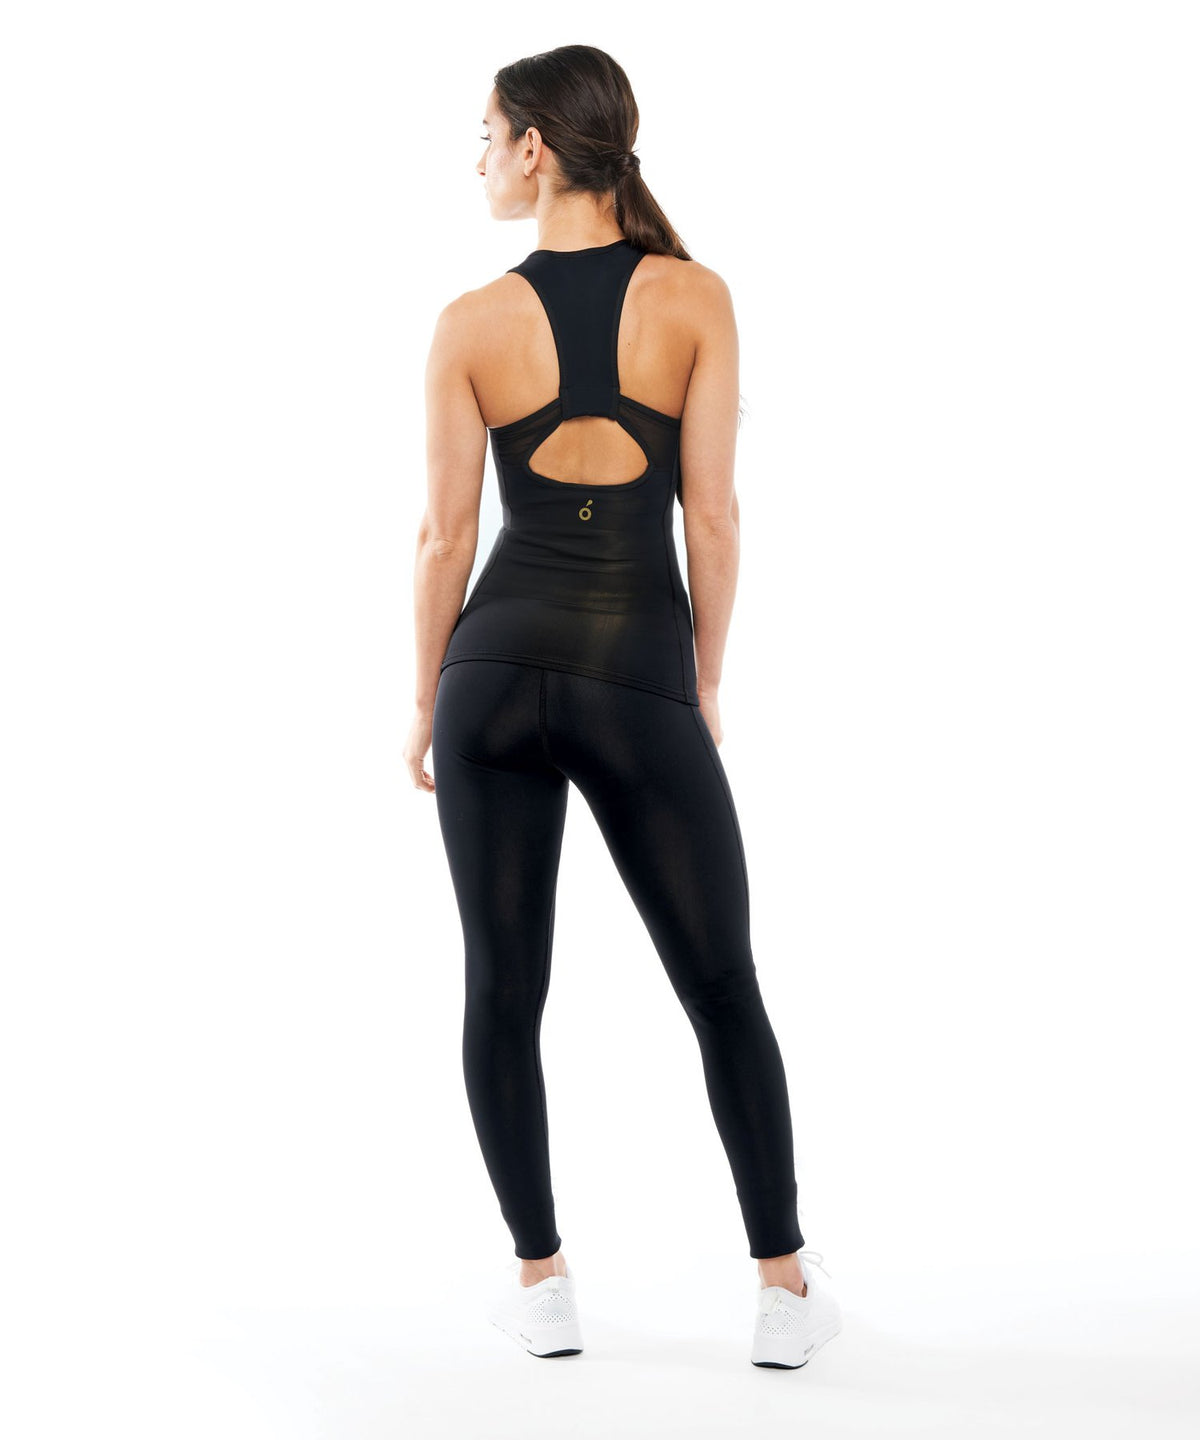 WOMEN'S RACER BACK TOP